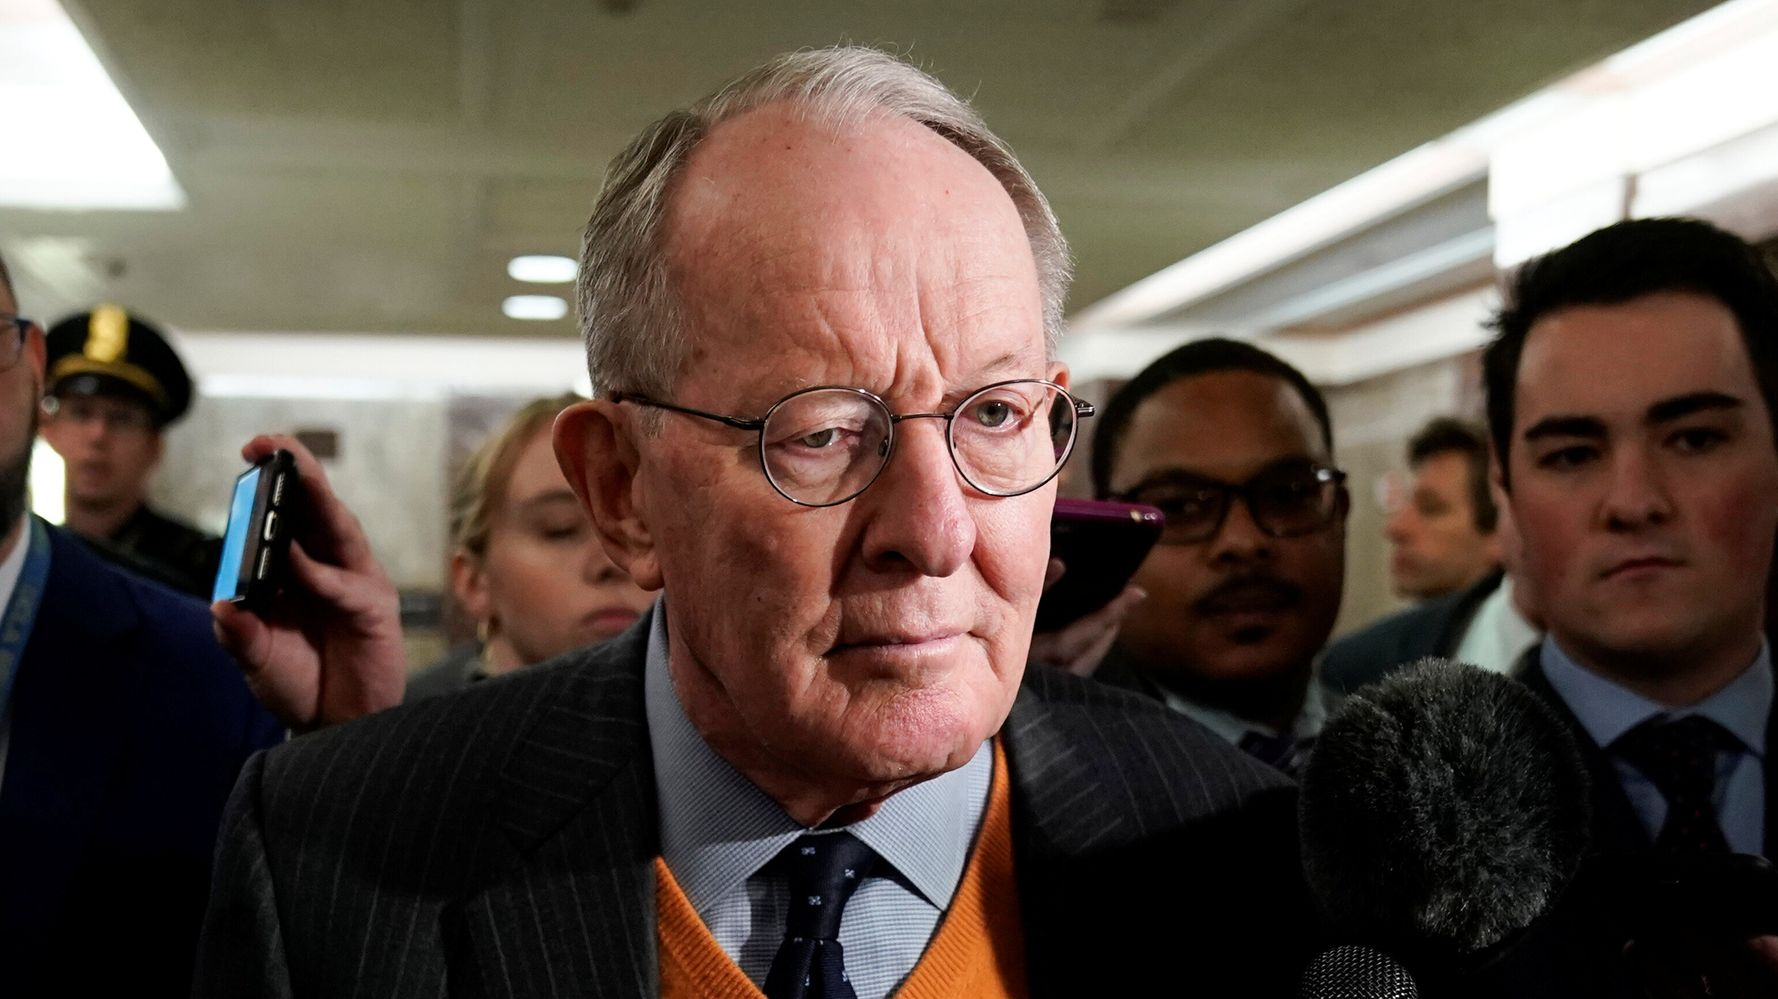 Westlake Legal Group 5e337a921f0000ac0b85a6a9 Lamar Alexander Says He'll Vote Against Witnesses In Trump Impeachment Trial